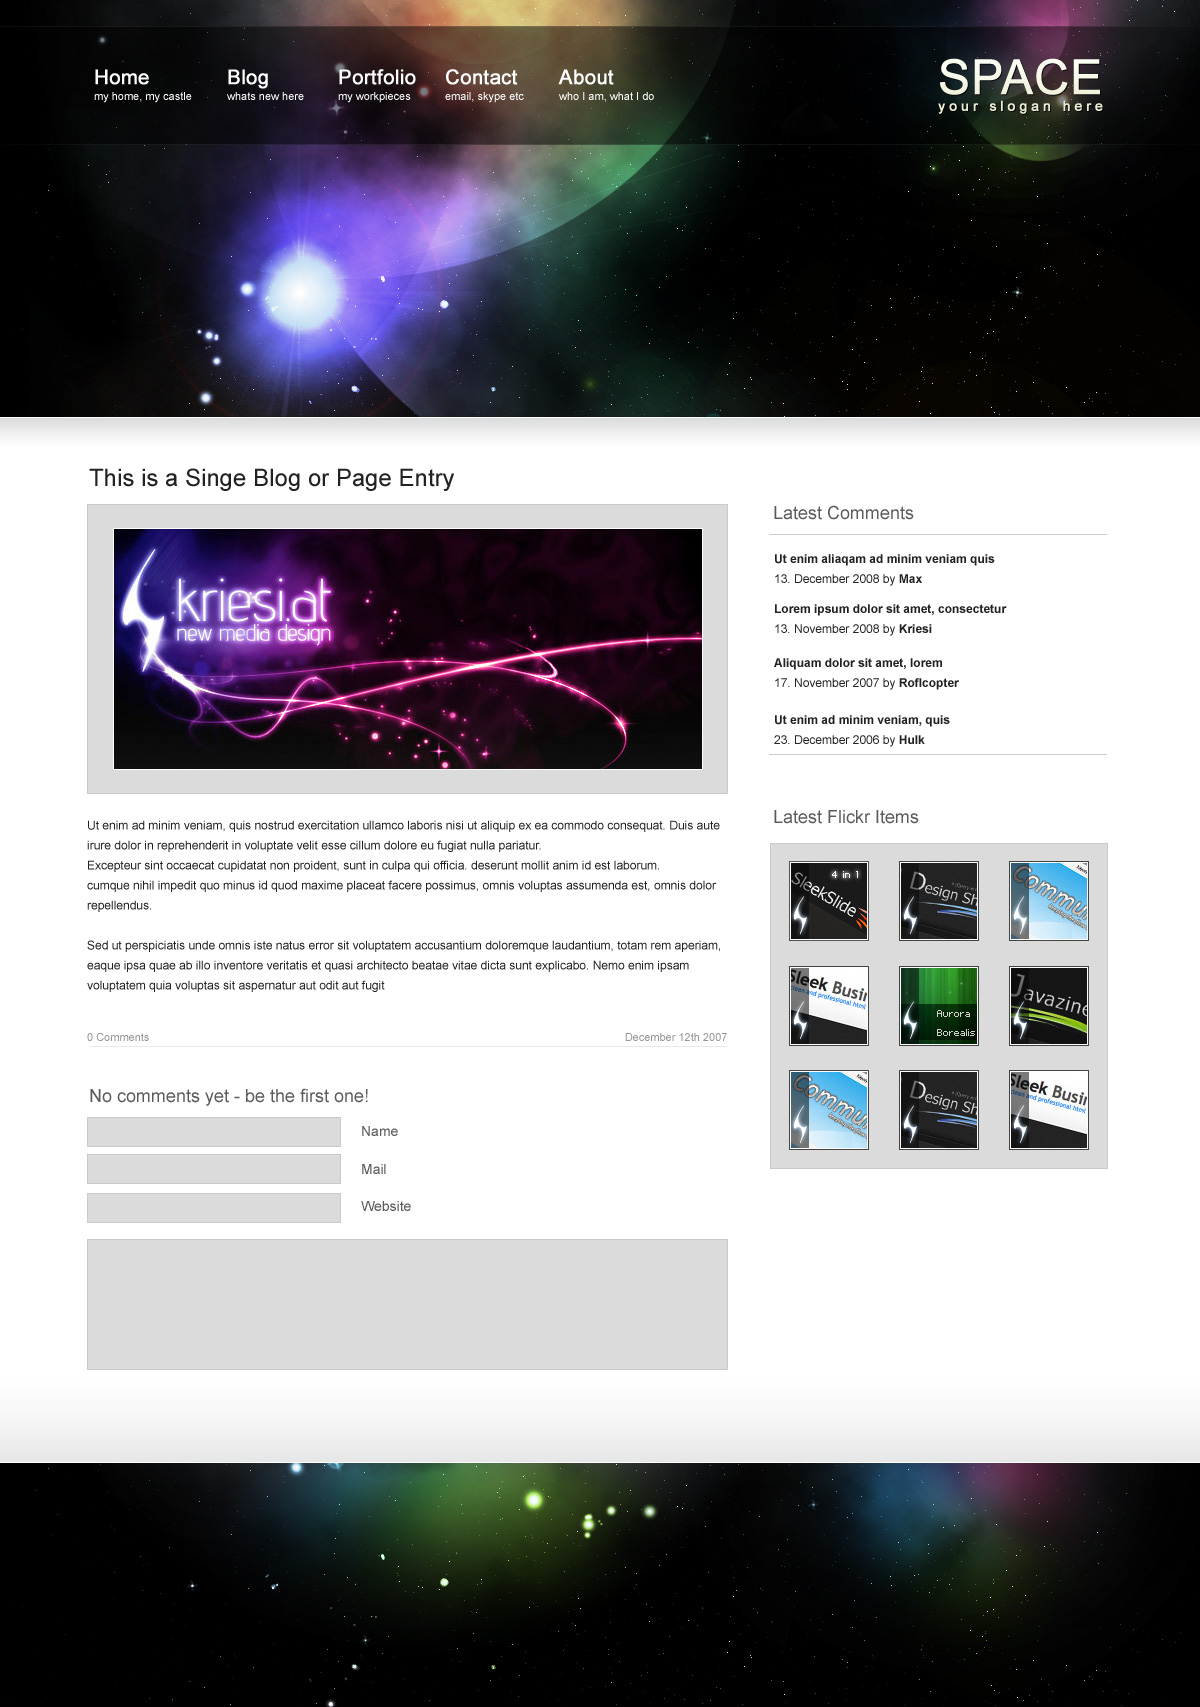 Space - Singel Page: One entry in Blog Style with commentbox